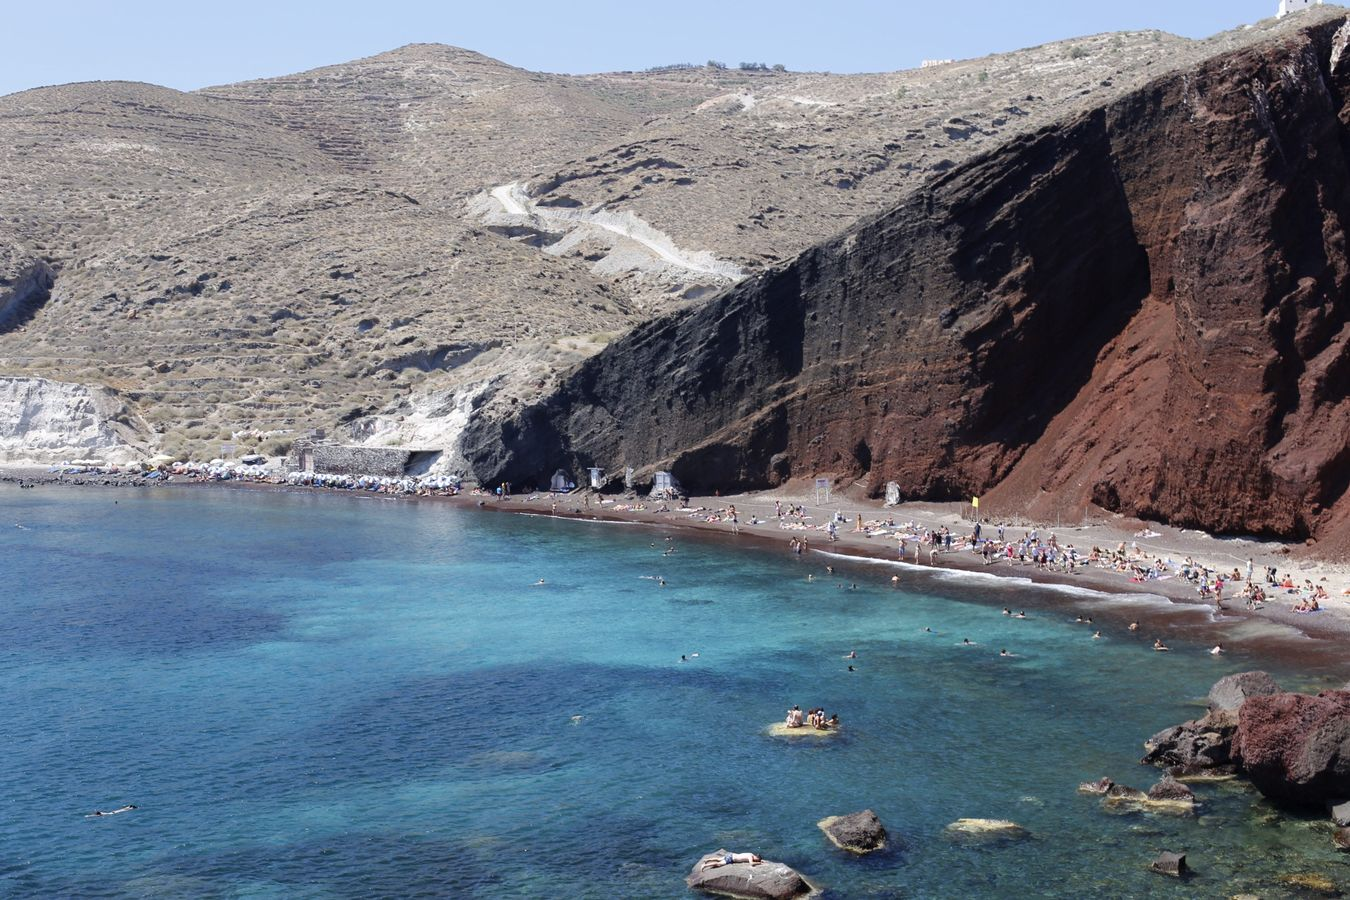 Red beach, Santorini, Greece (2016) Santorini Beachphotography Redbeach Redbeachsantorini Santorini Island Santorini, Greece Santorinivolcano Santoriniisland Greek Islands Greekislands Greece Greece Landscapes Greeklife Grecia Nature Nature Photography Landscape Landscape_photography Summer Travel Travel Photography Beautifuldestinations Redsandbeach Islandlife Canon6d